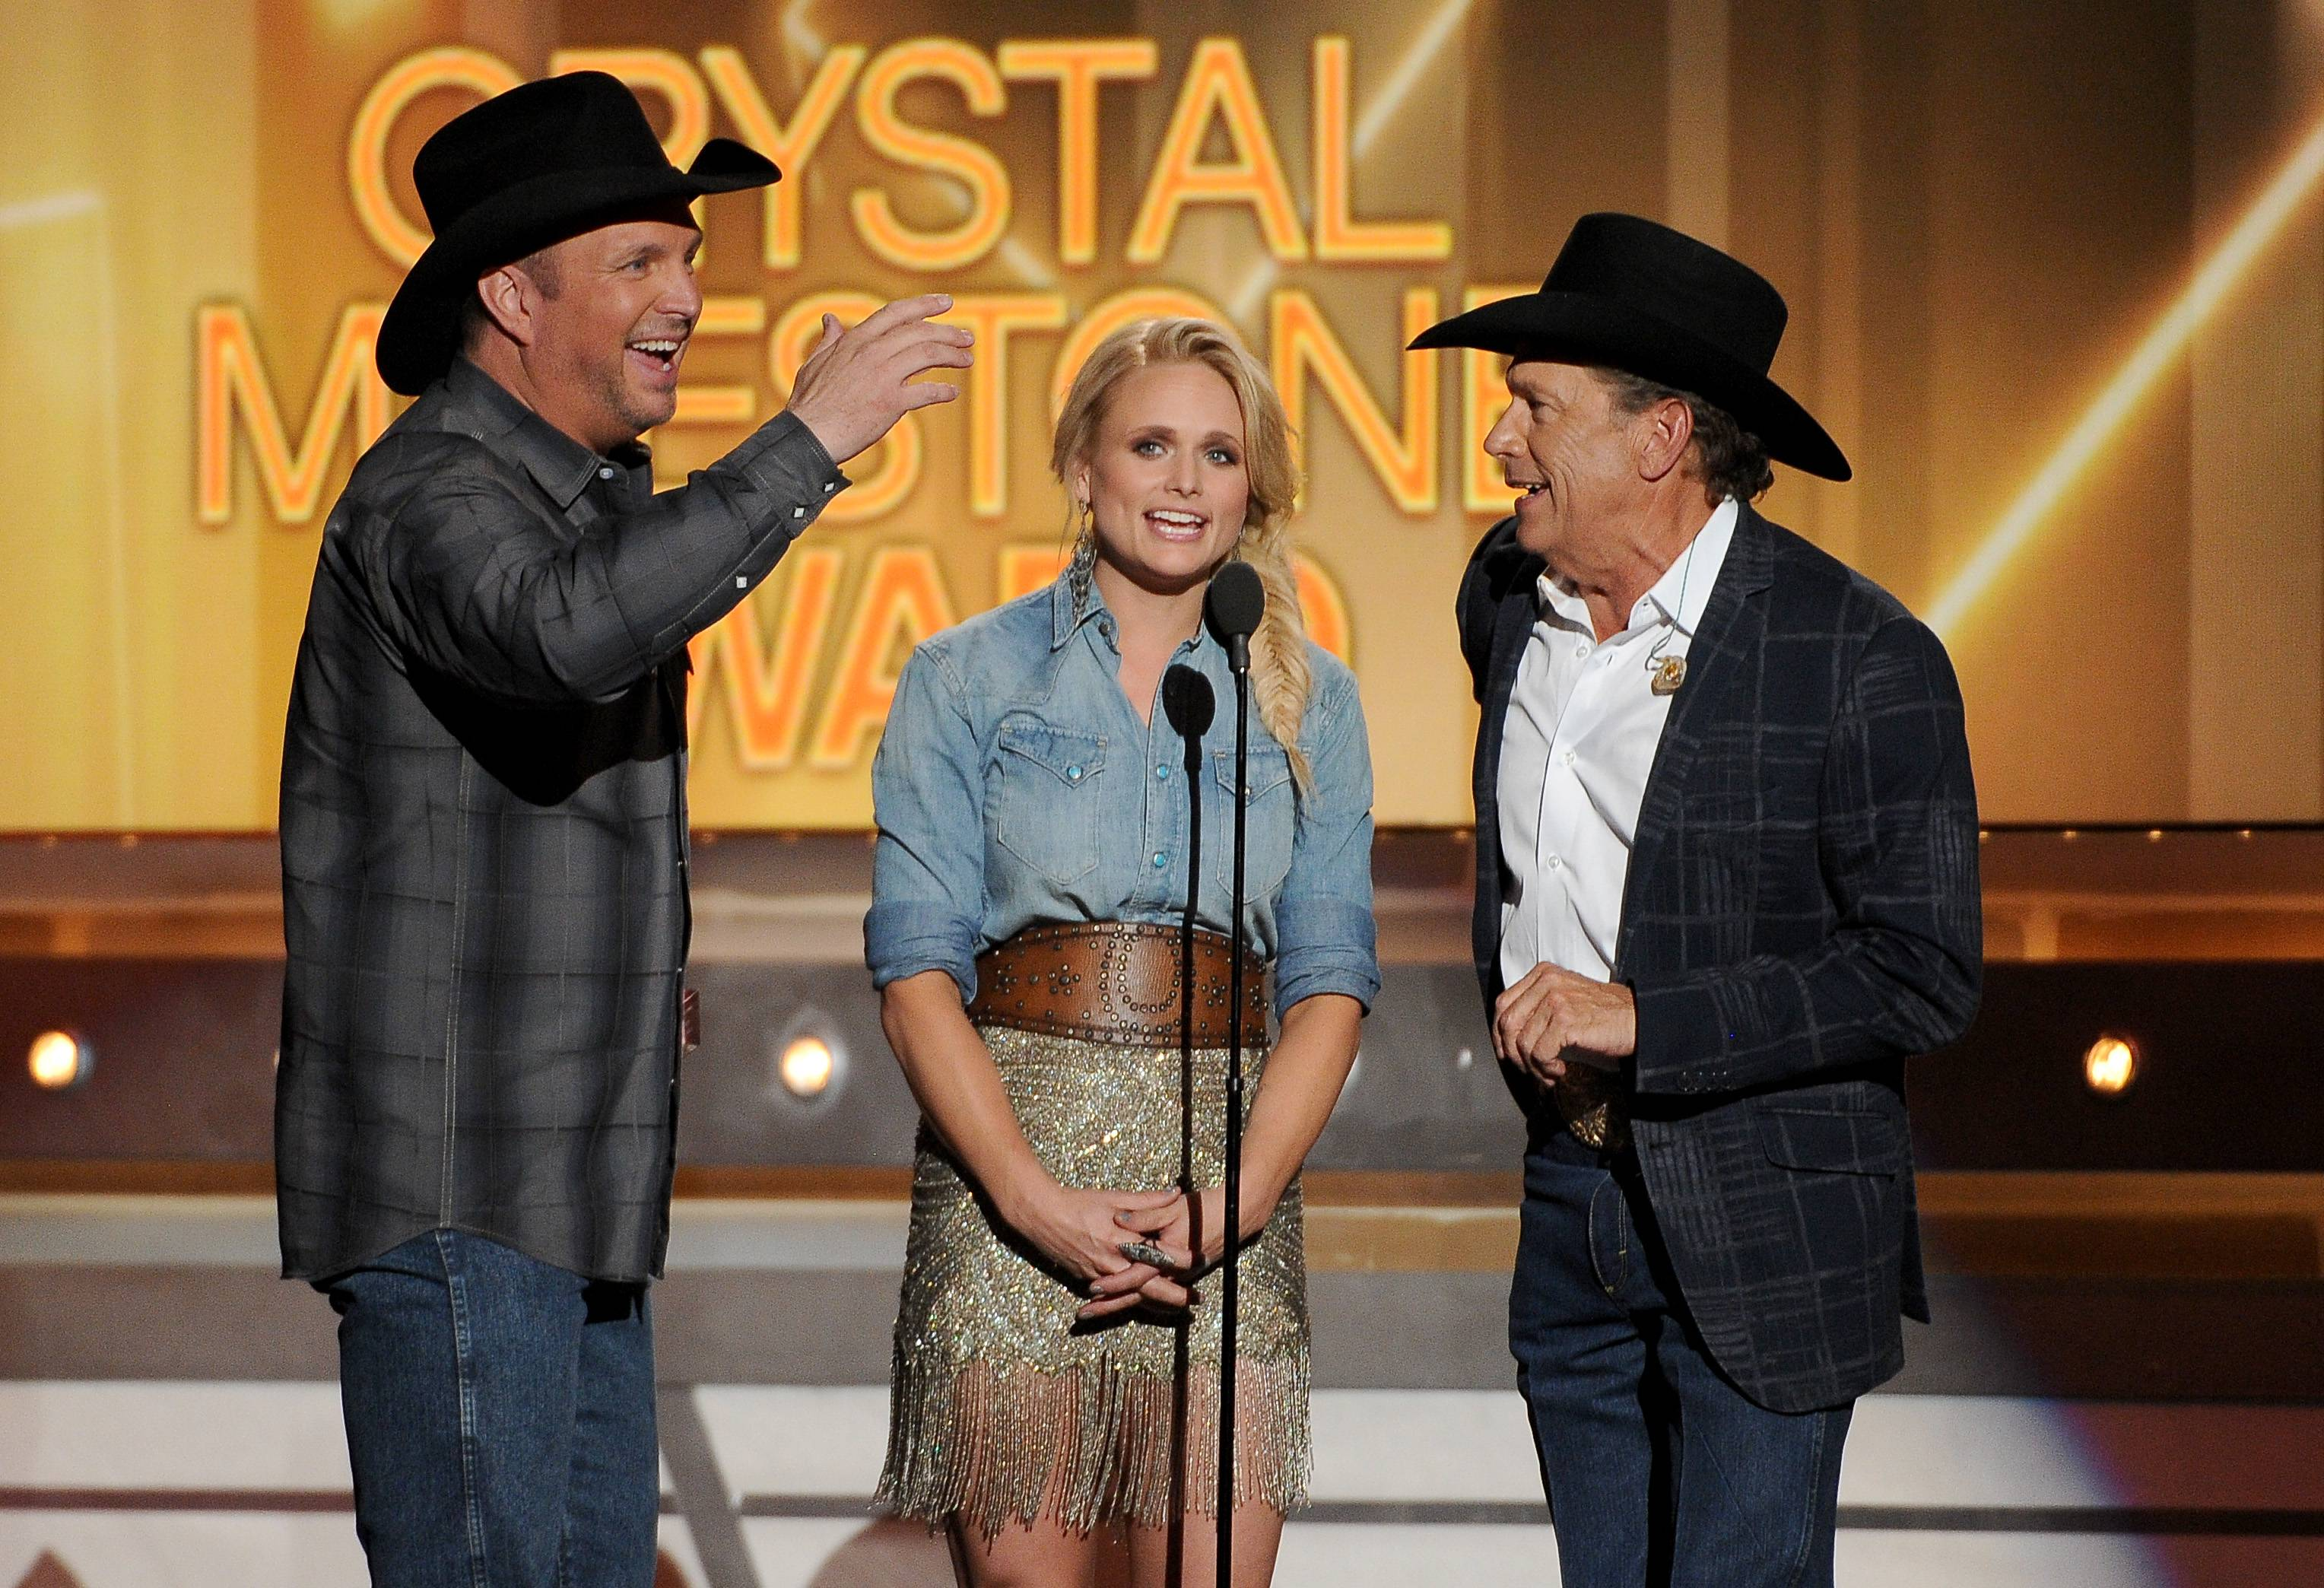 Garth Brooks, Miranda Lambert and George Strait speak on stage at the 49th annual Academy of Country Music Awards at the MGM Grand Garden Arena on Sunday in Las Vegas.